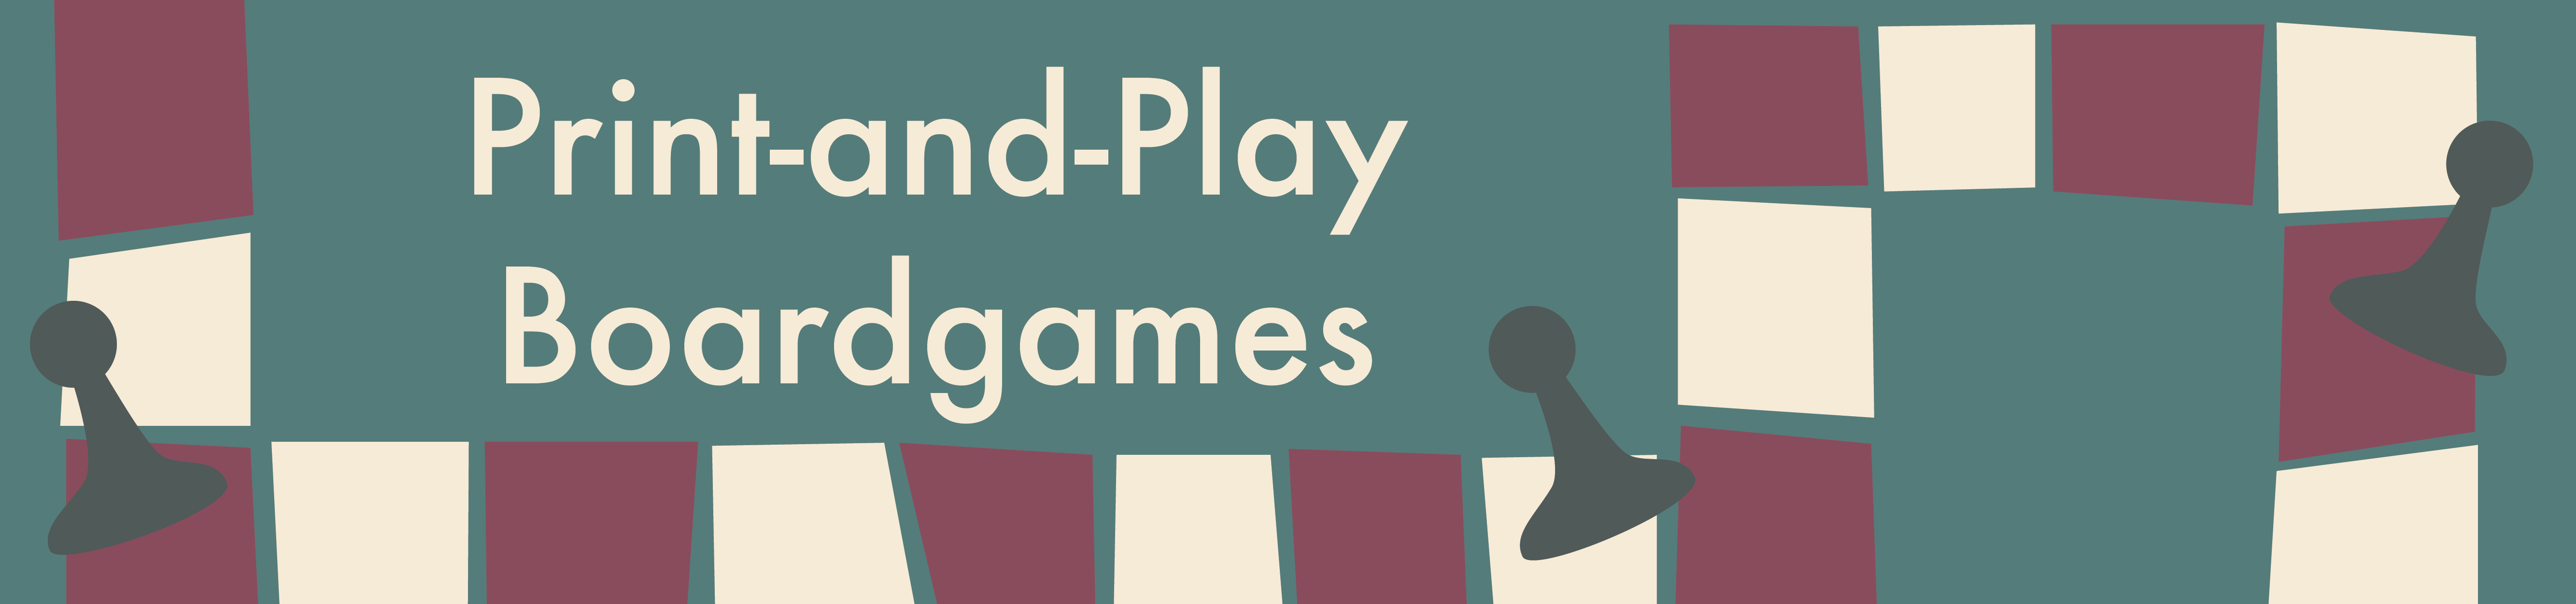 Print-and-Play Boardgames header